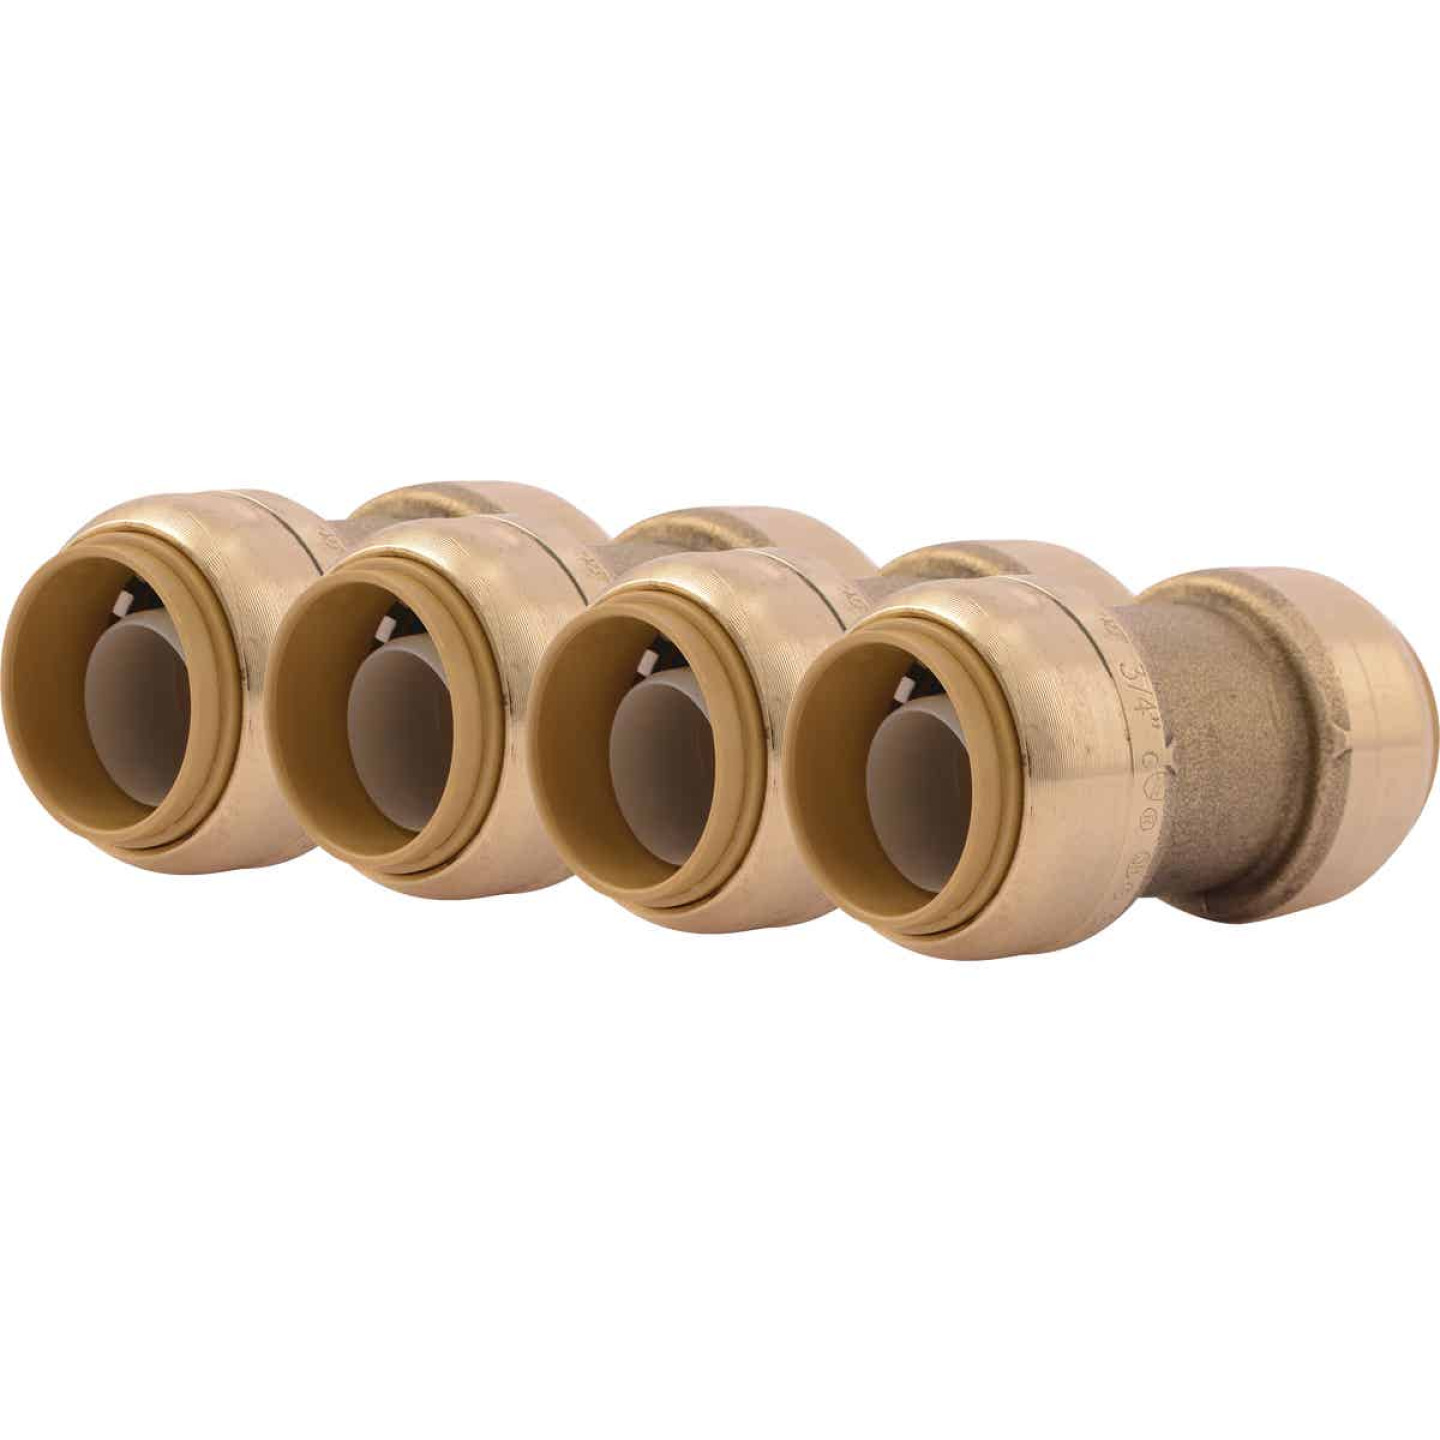 SharkBite 3/4 In. Push-to-Connect Straight Brass Coupling (4-Pack) Image 1